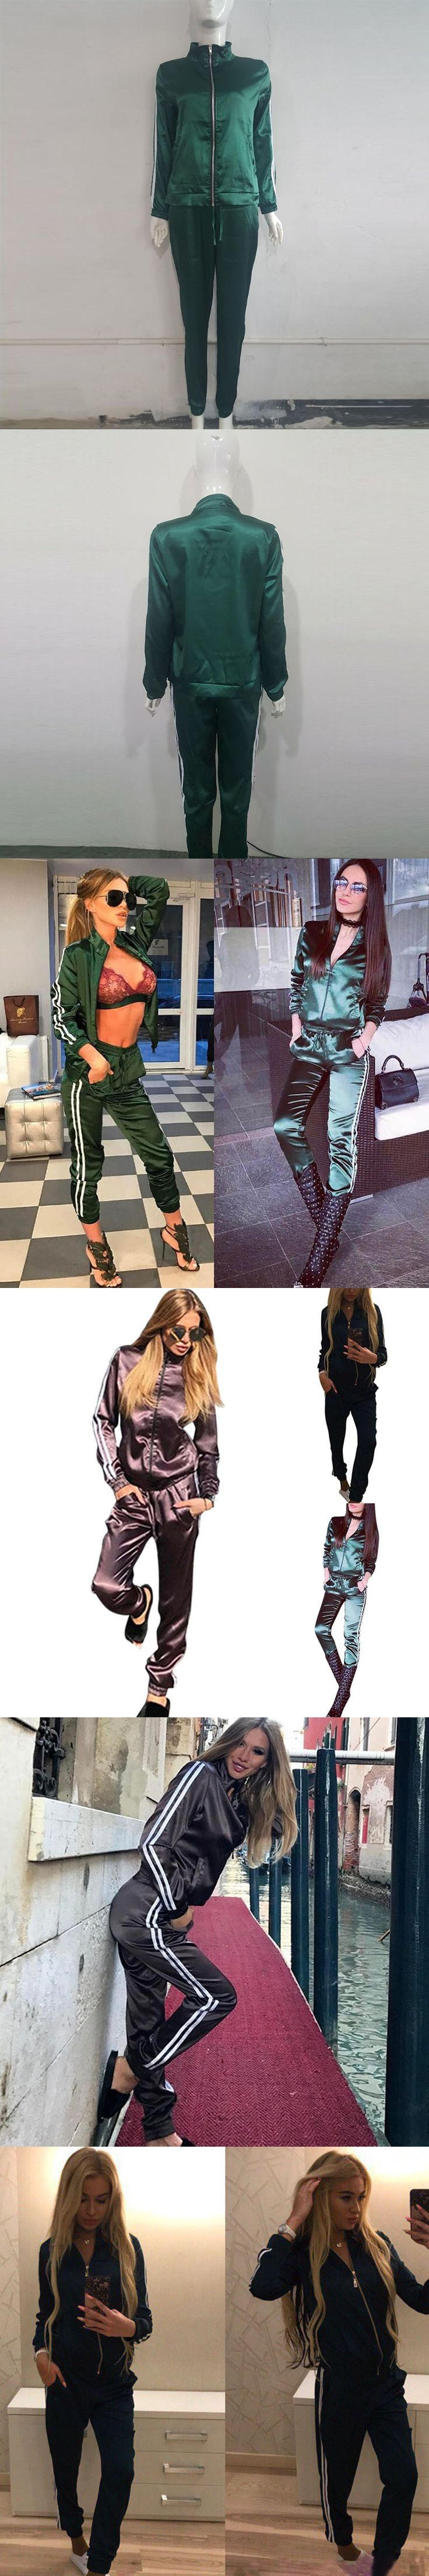 Fashion Spring Autumn Women 2 Pieces Suit With Pocket Sweatshirt Long Pants Zipped Tracksuit Lady Girl Casual Sportswear -MX8